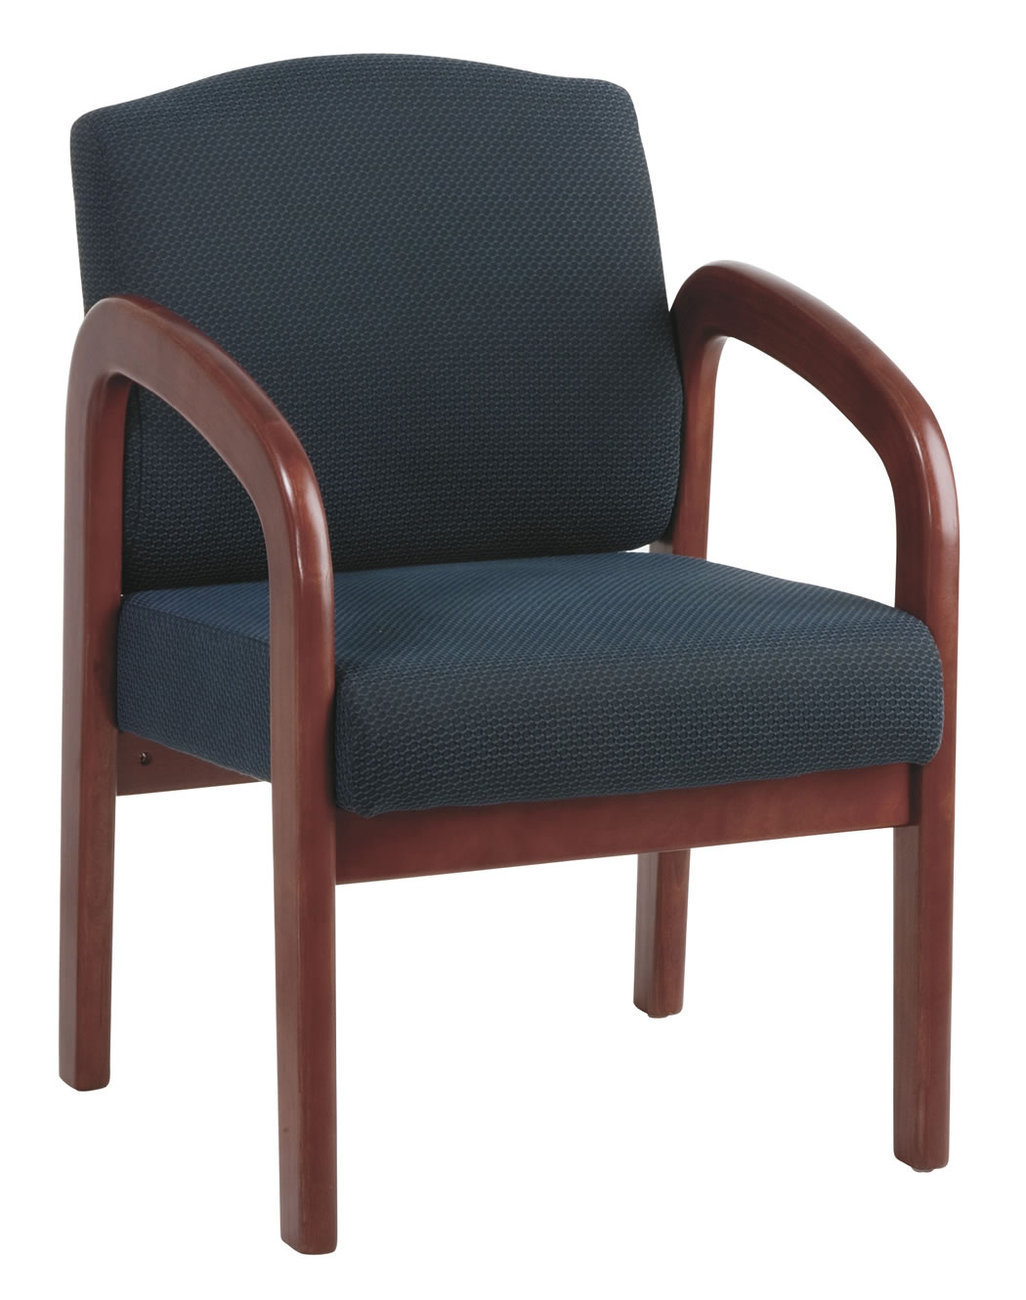 waiting room chairs for sale antique ladder back cherry finish wood and fabric visitor conference seating